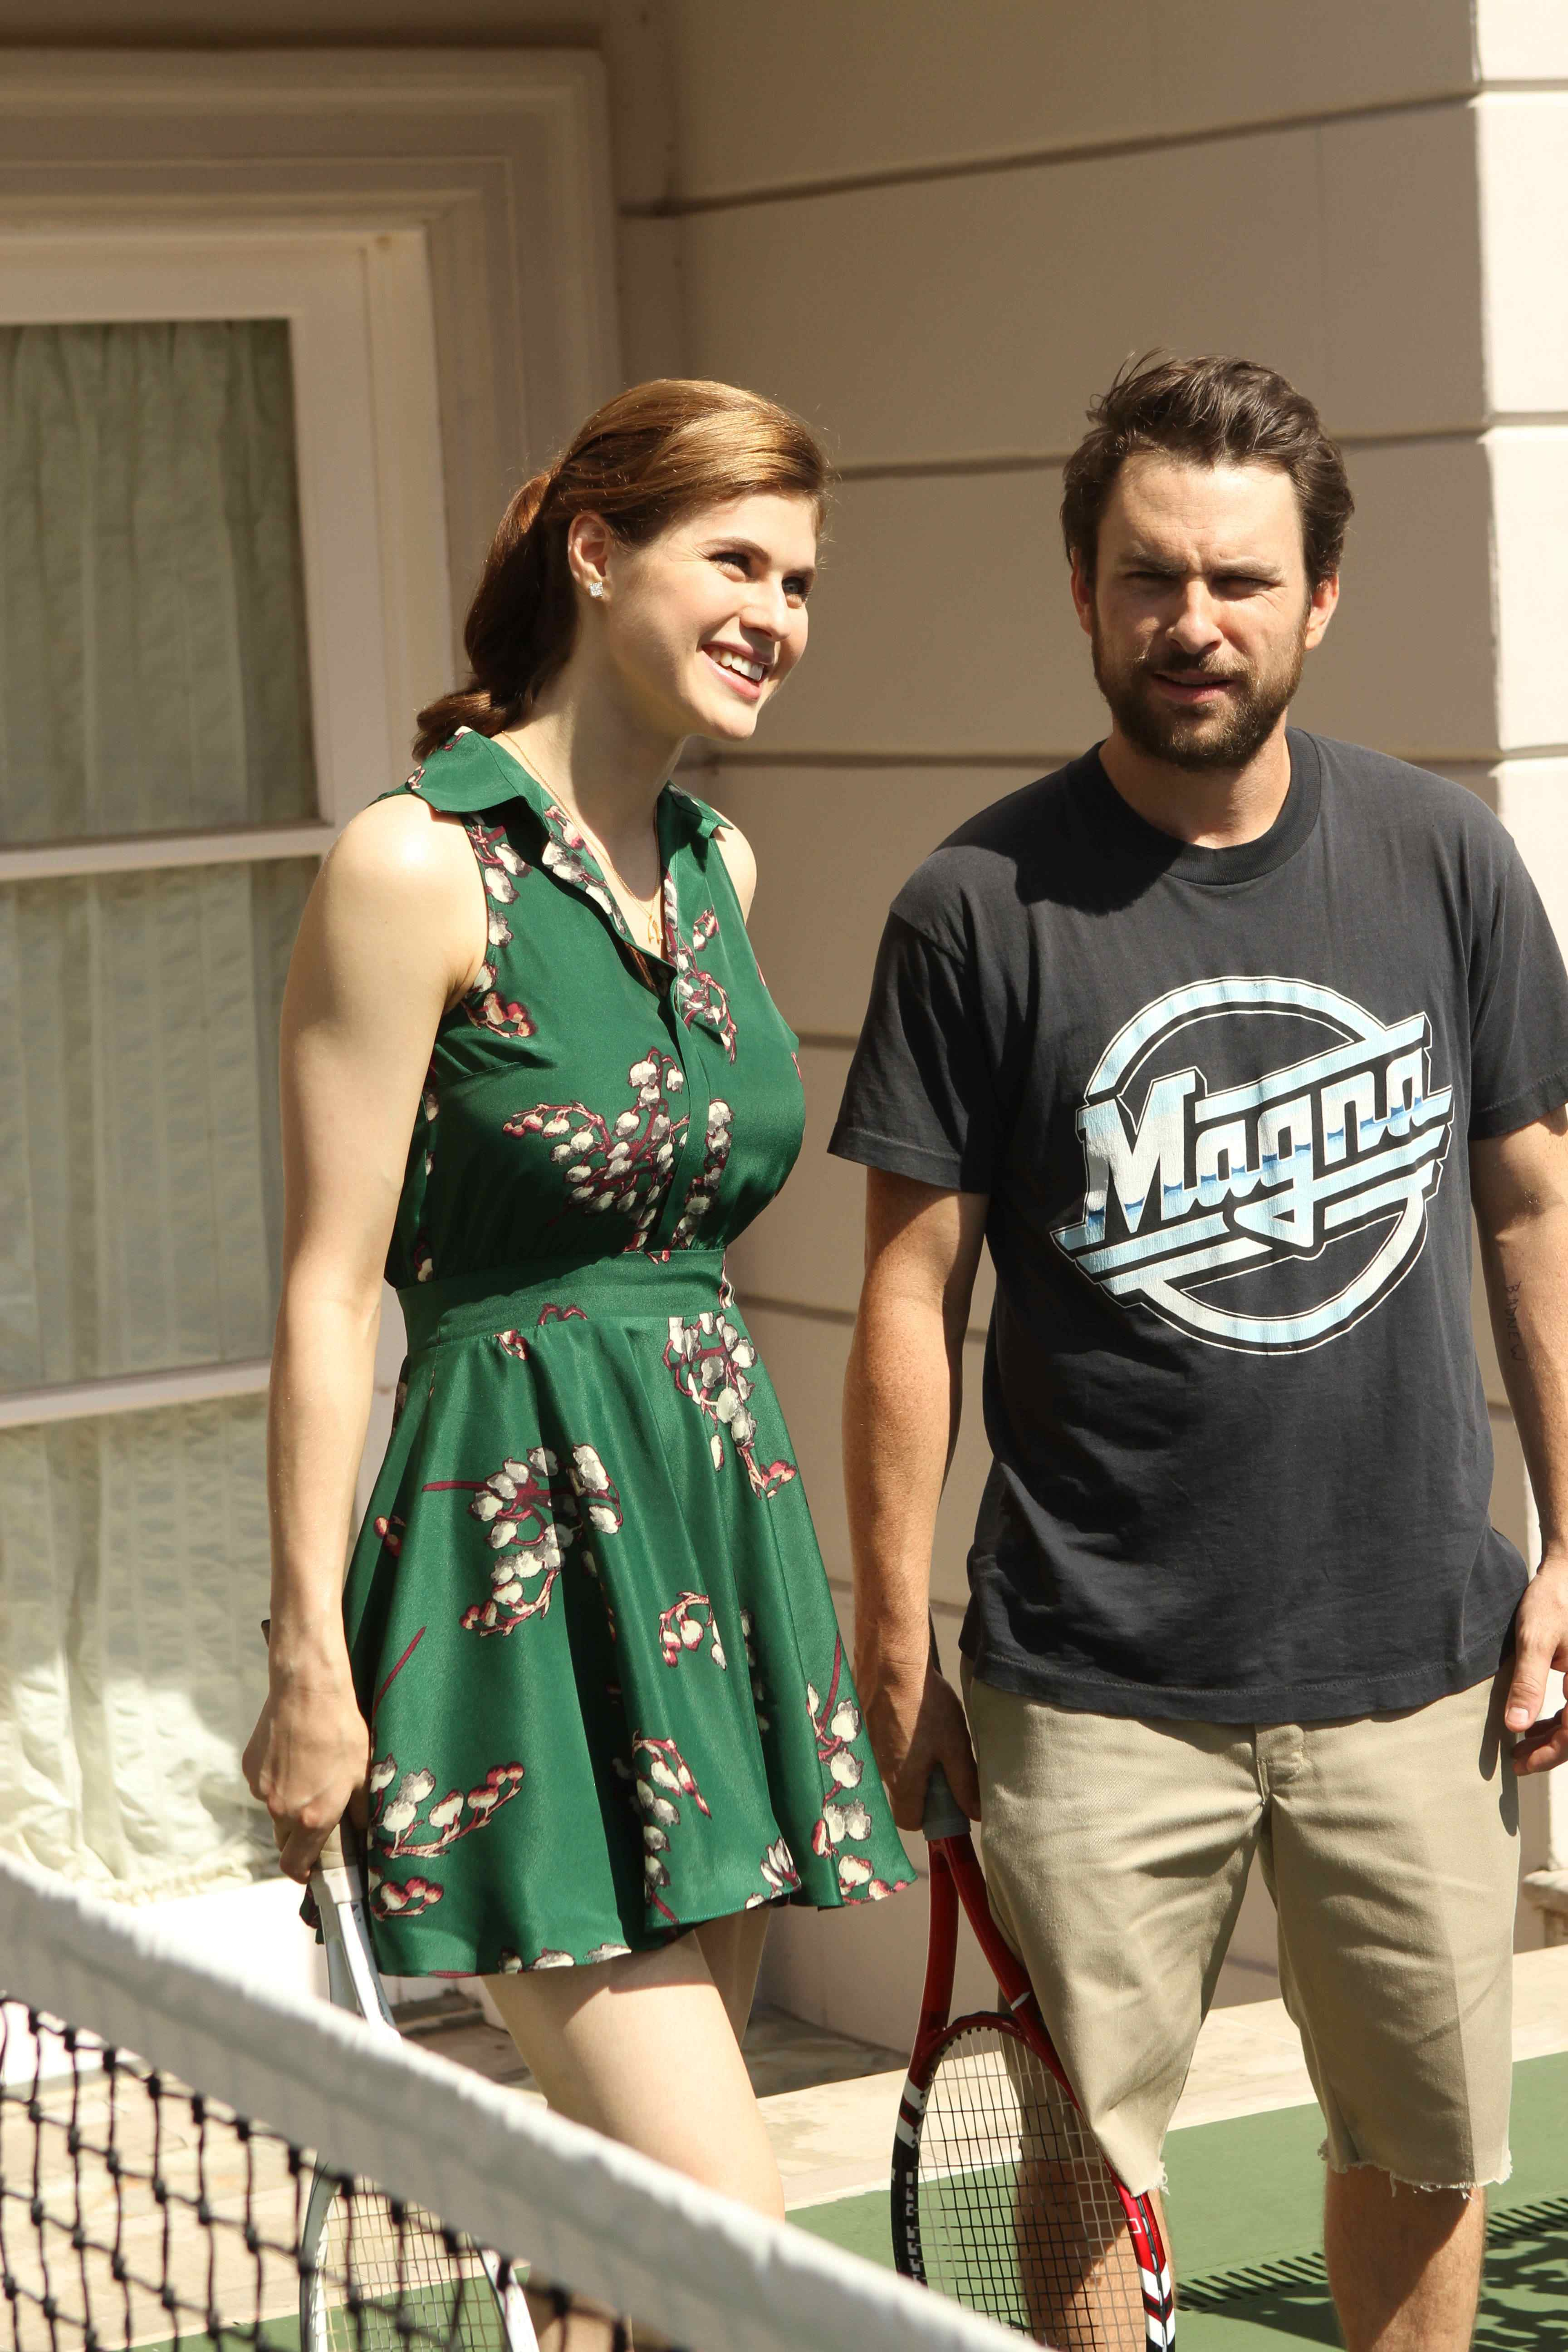 iasip charlie dating They met in 2001 and were dating in 2004 when they co-starred as incestuous siblings on reno 911 wikimedia commons has media related to charlie day.